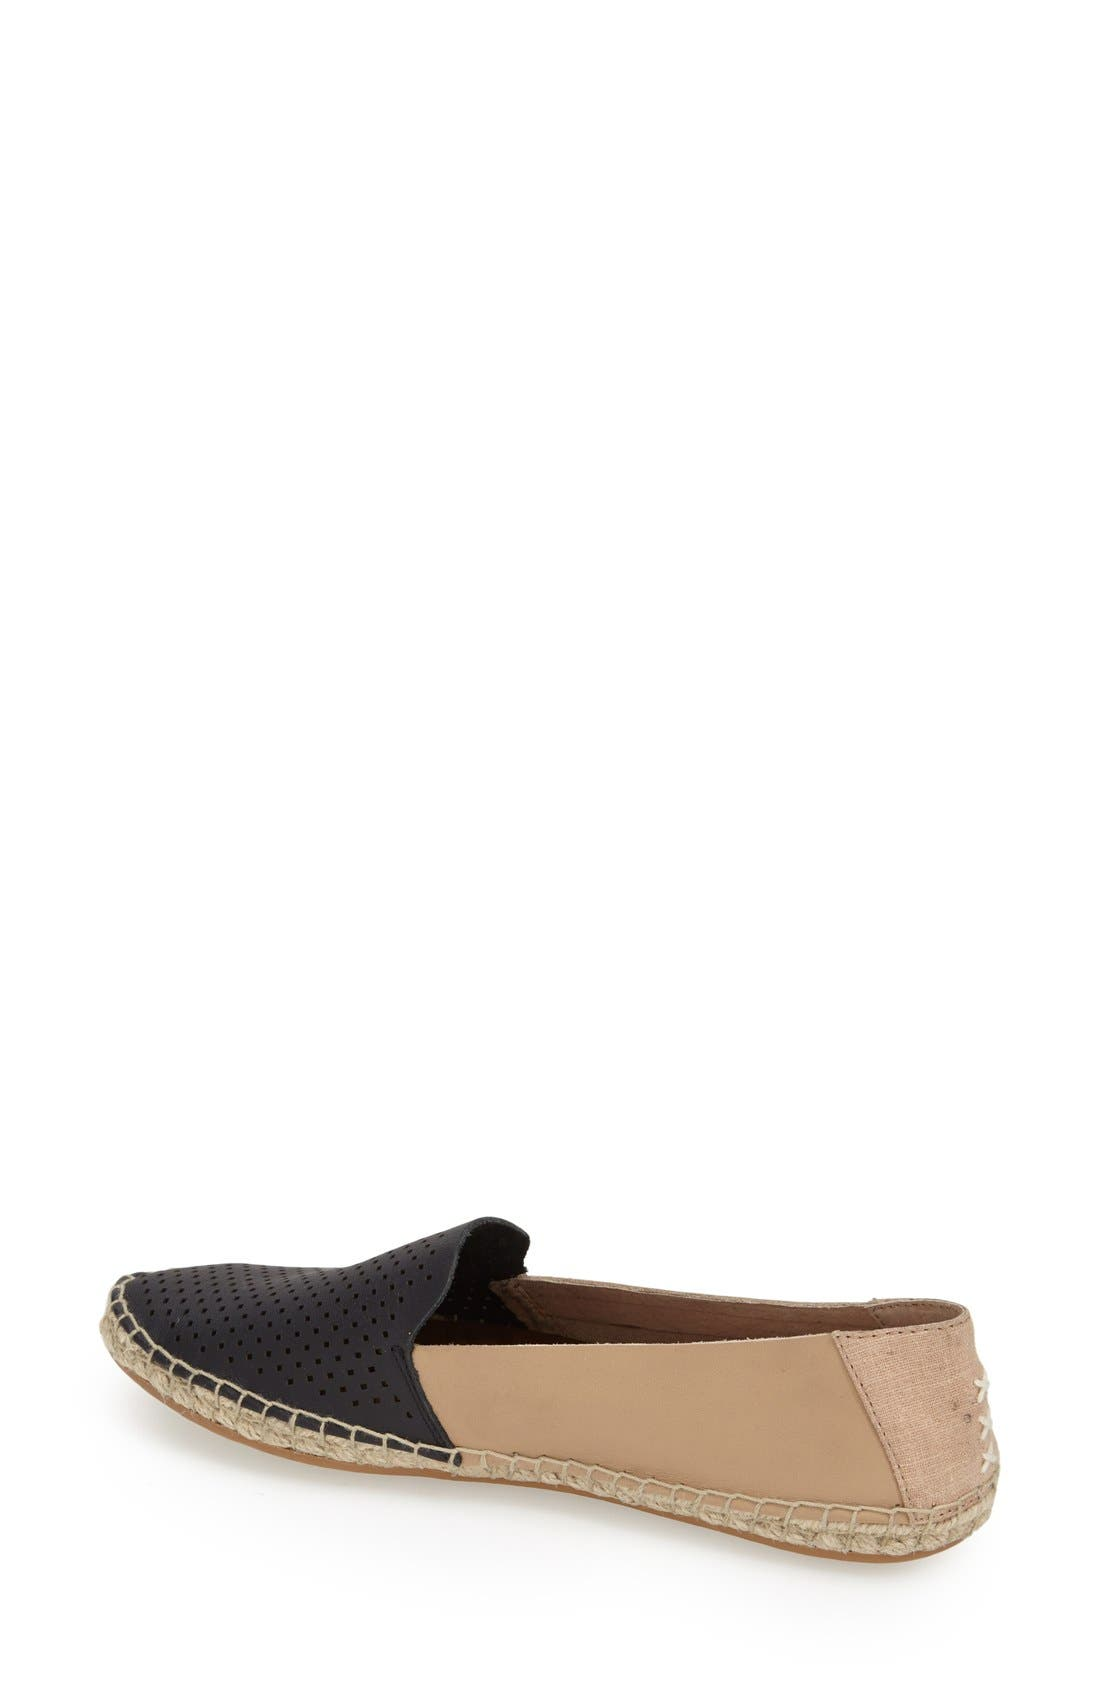 Alternate Image 2  - Reef 'Shaded Summer' Espadrille Flat (Women)